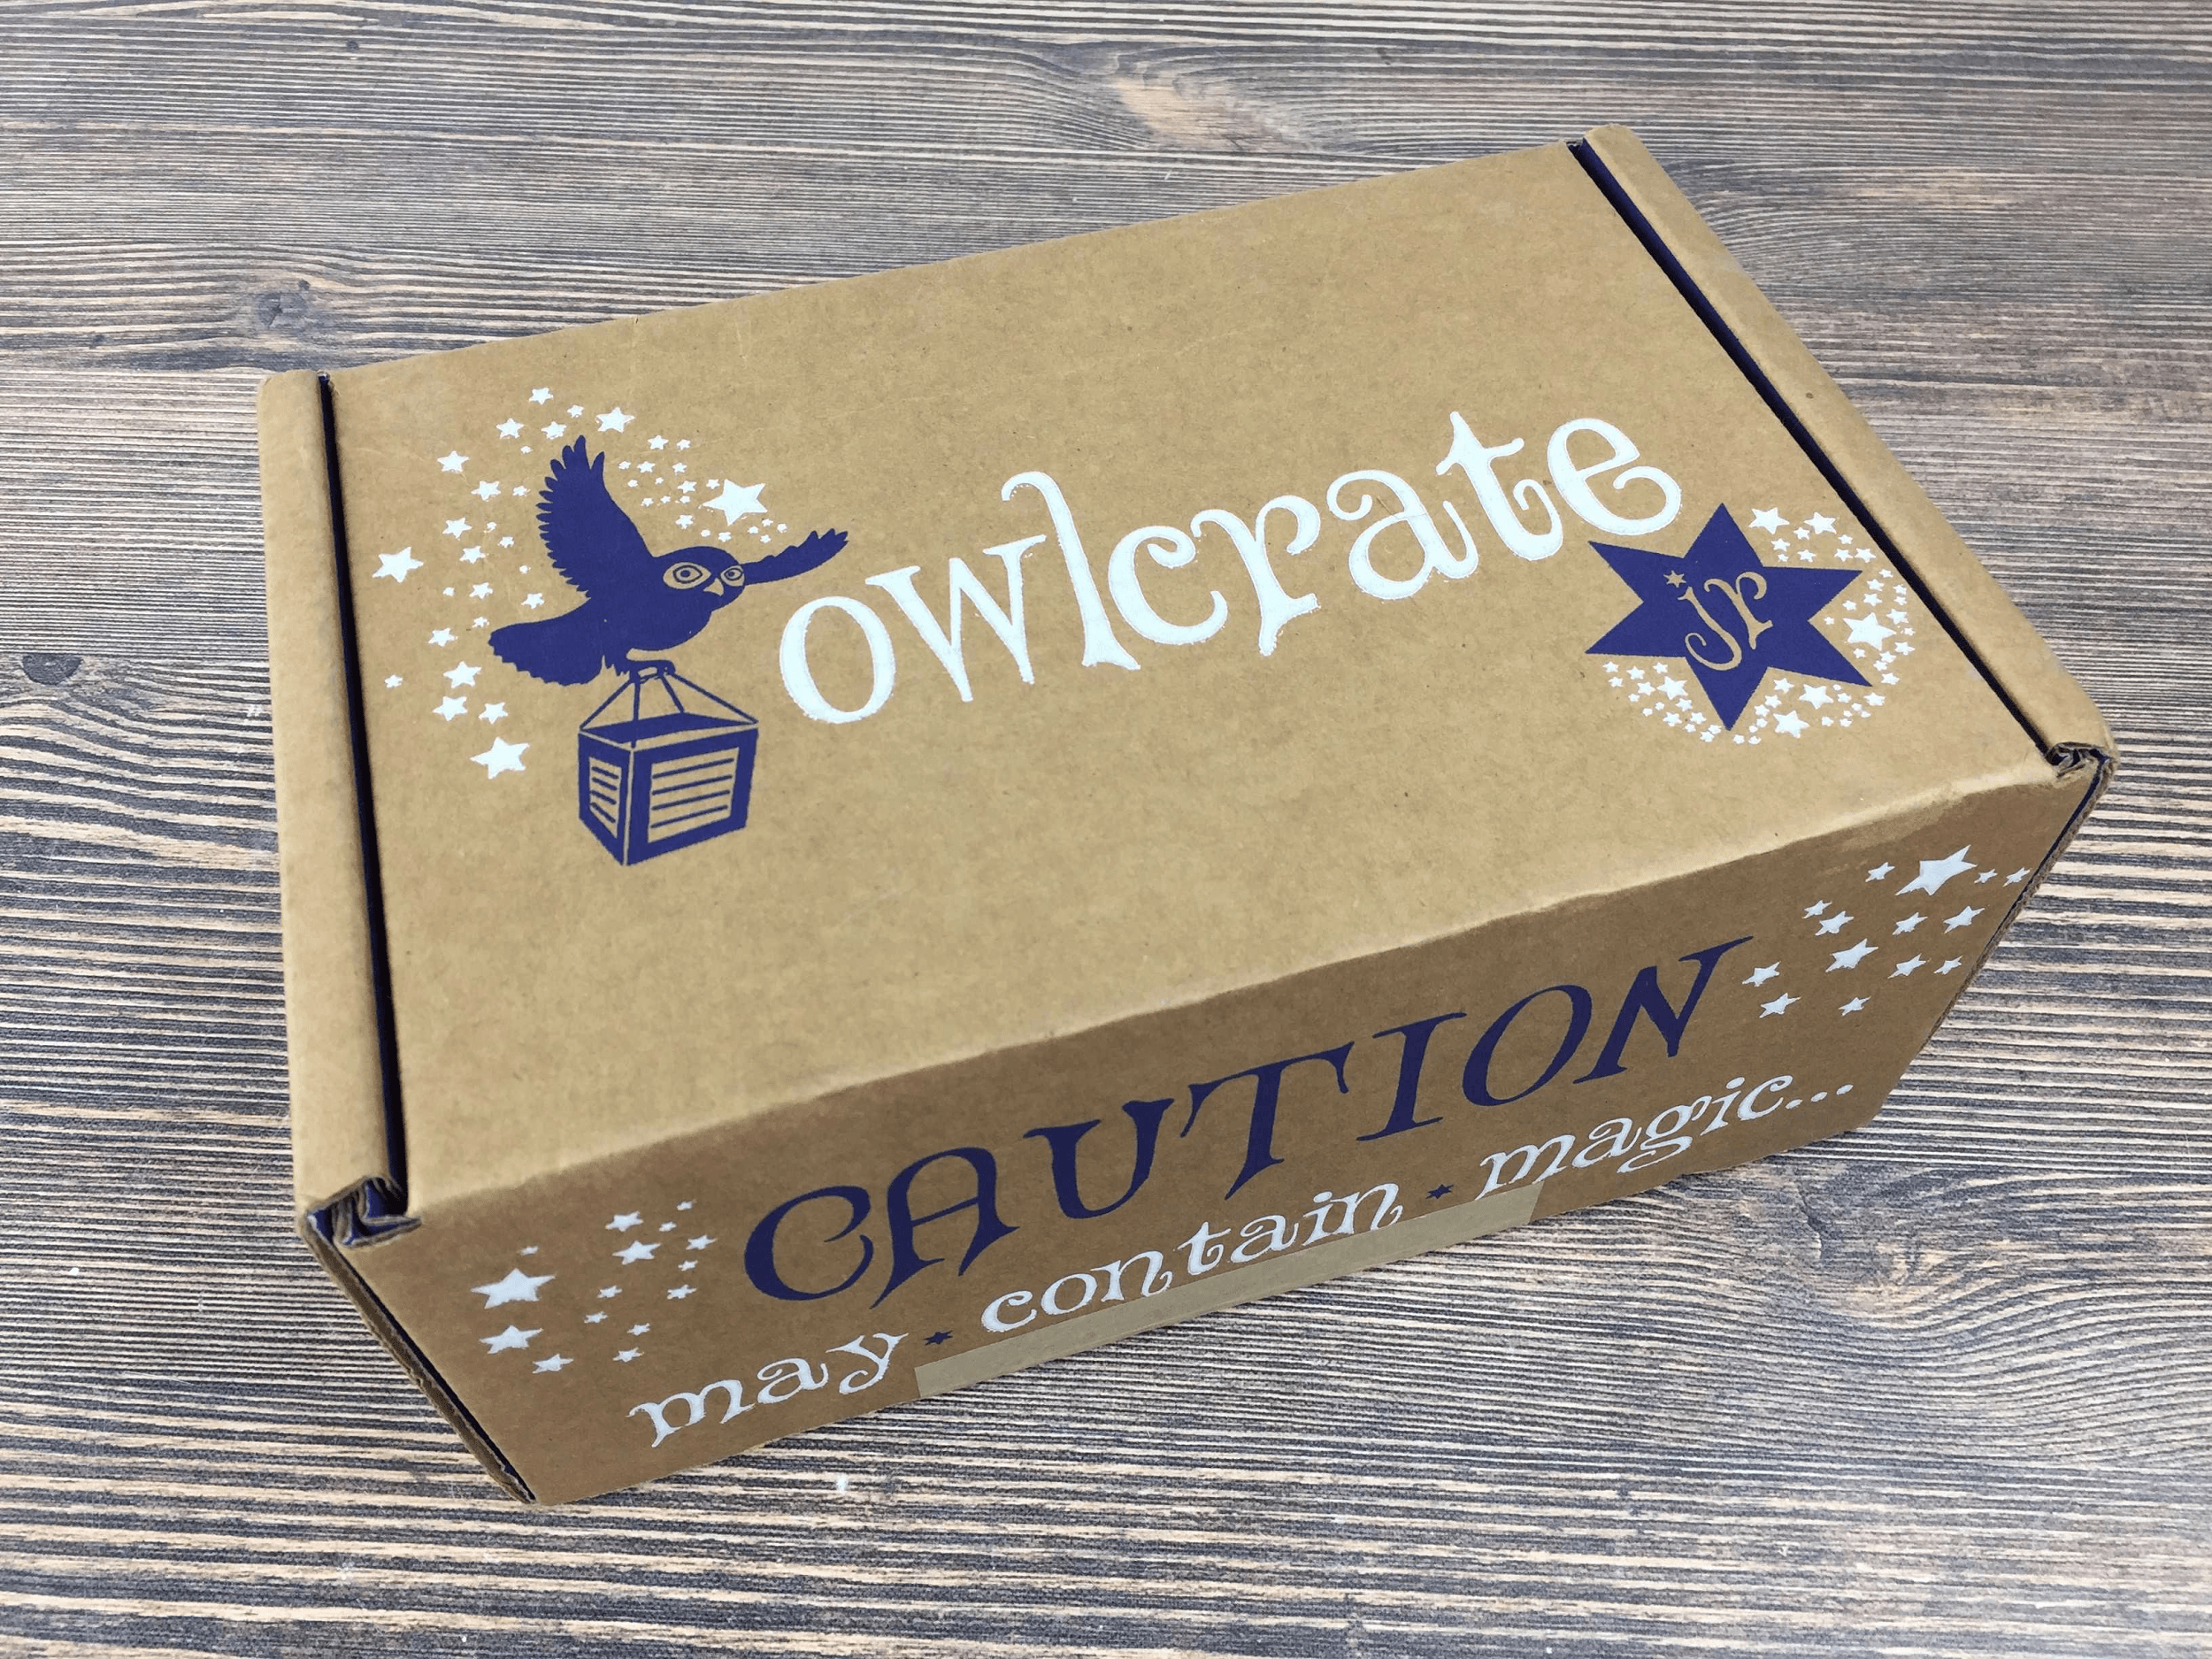 Cardboard Box Printed Design - Owlcrate